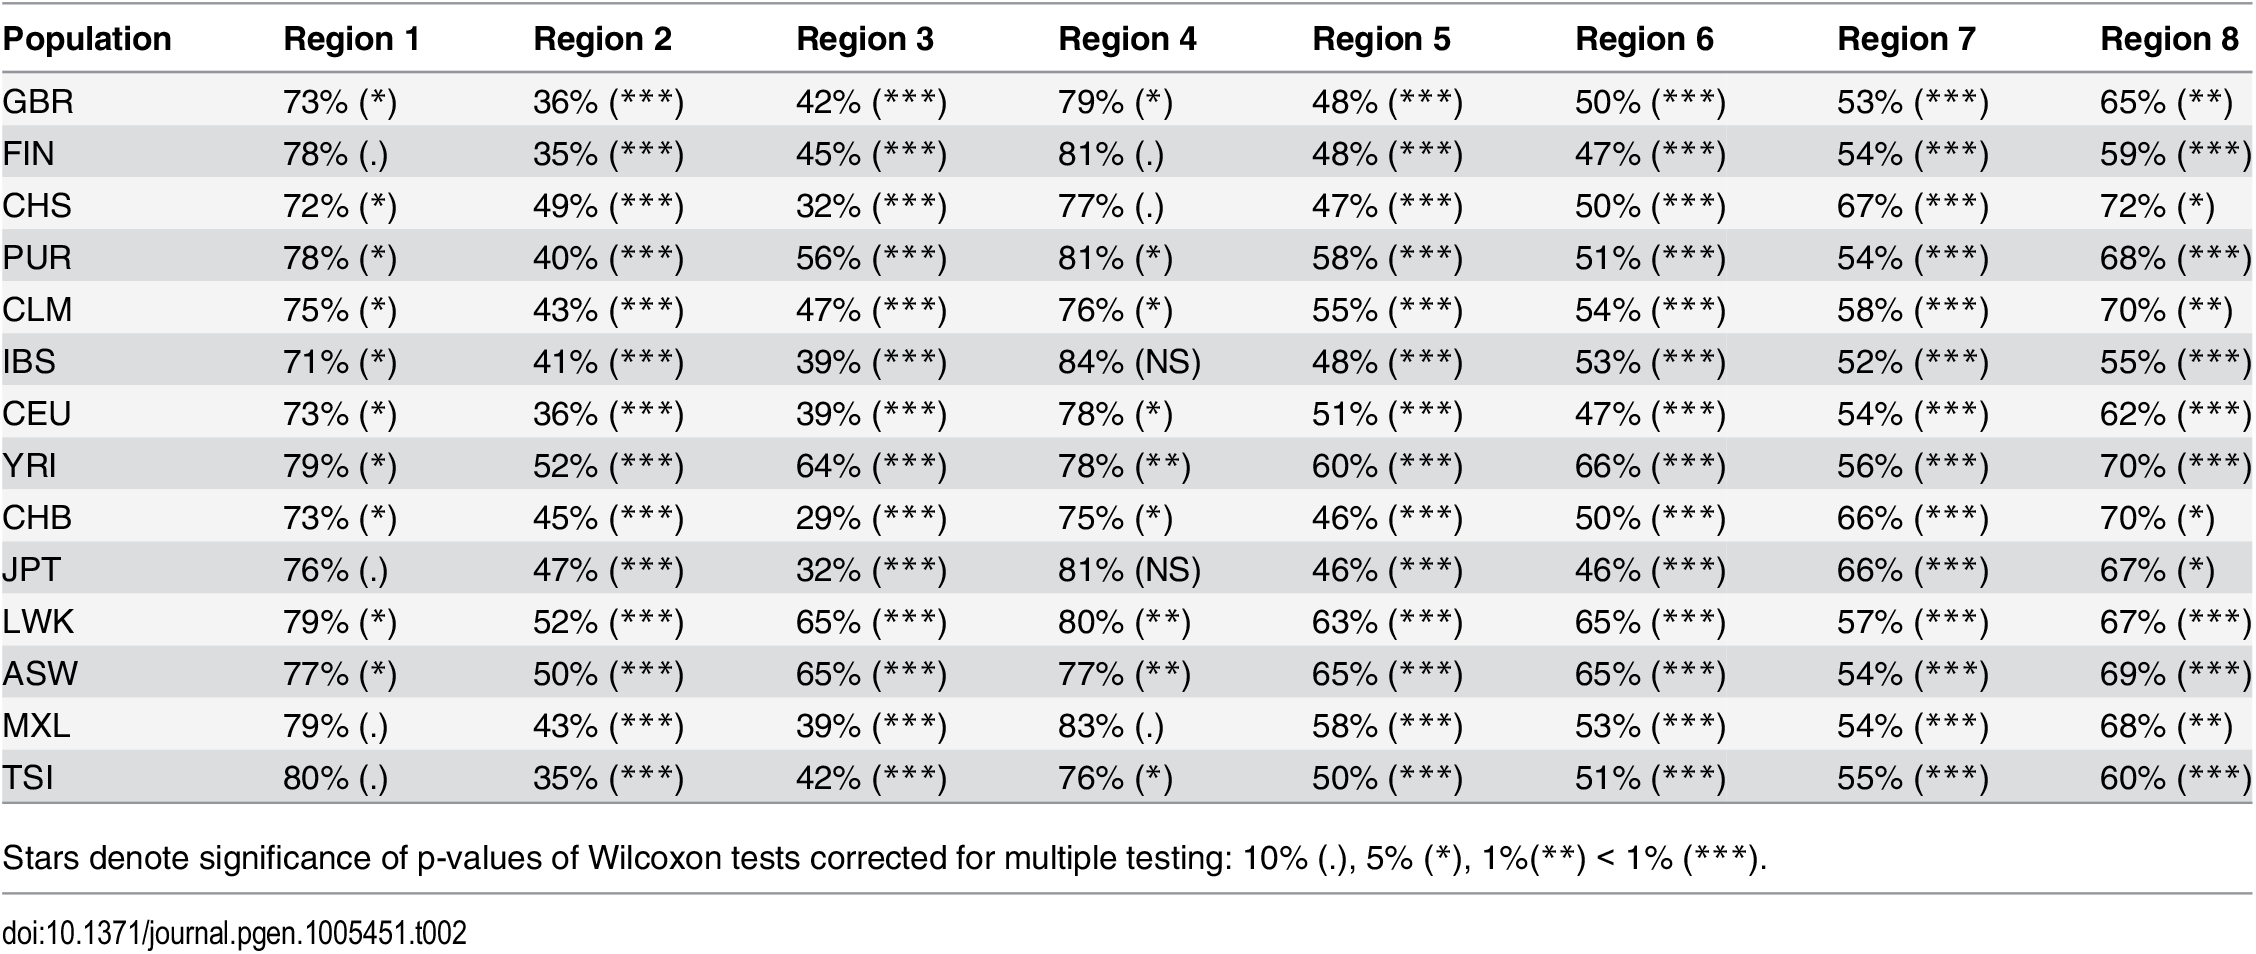 Nucleotide diversity (measured in 100 kb non-overlapping windows) in low-ILS regions in Human populations relative to the X chromosome average outside the low-ILS regions.